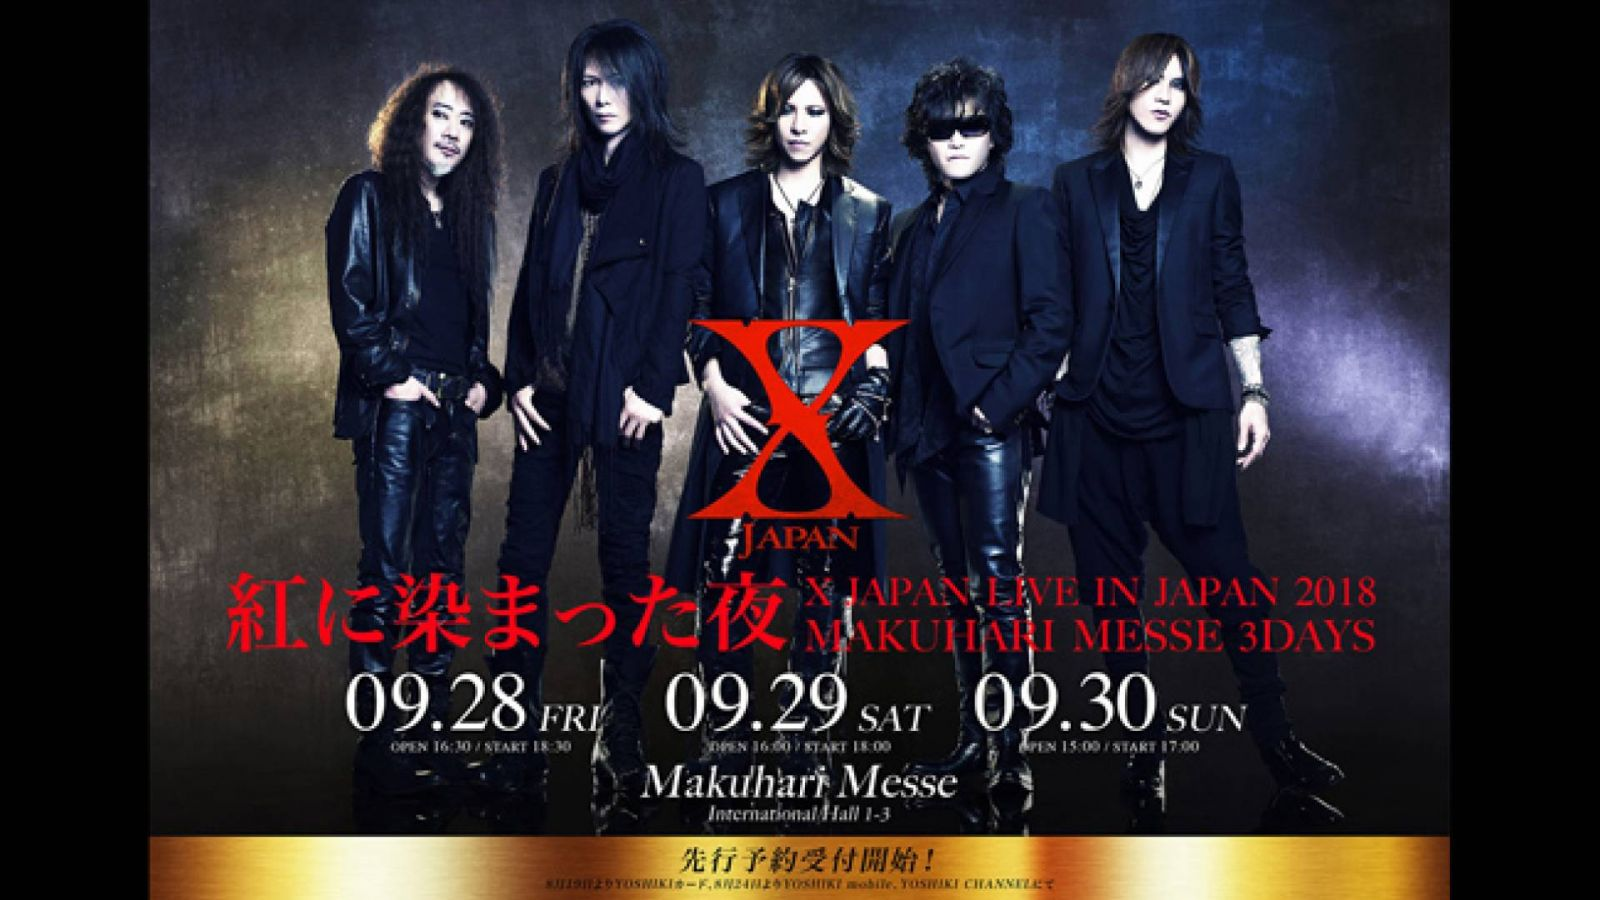 X JAPAN anuncia tres conciertos en el Makuhari Messe © X JAPAN